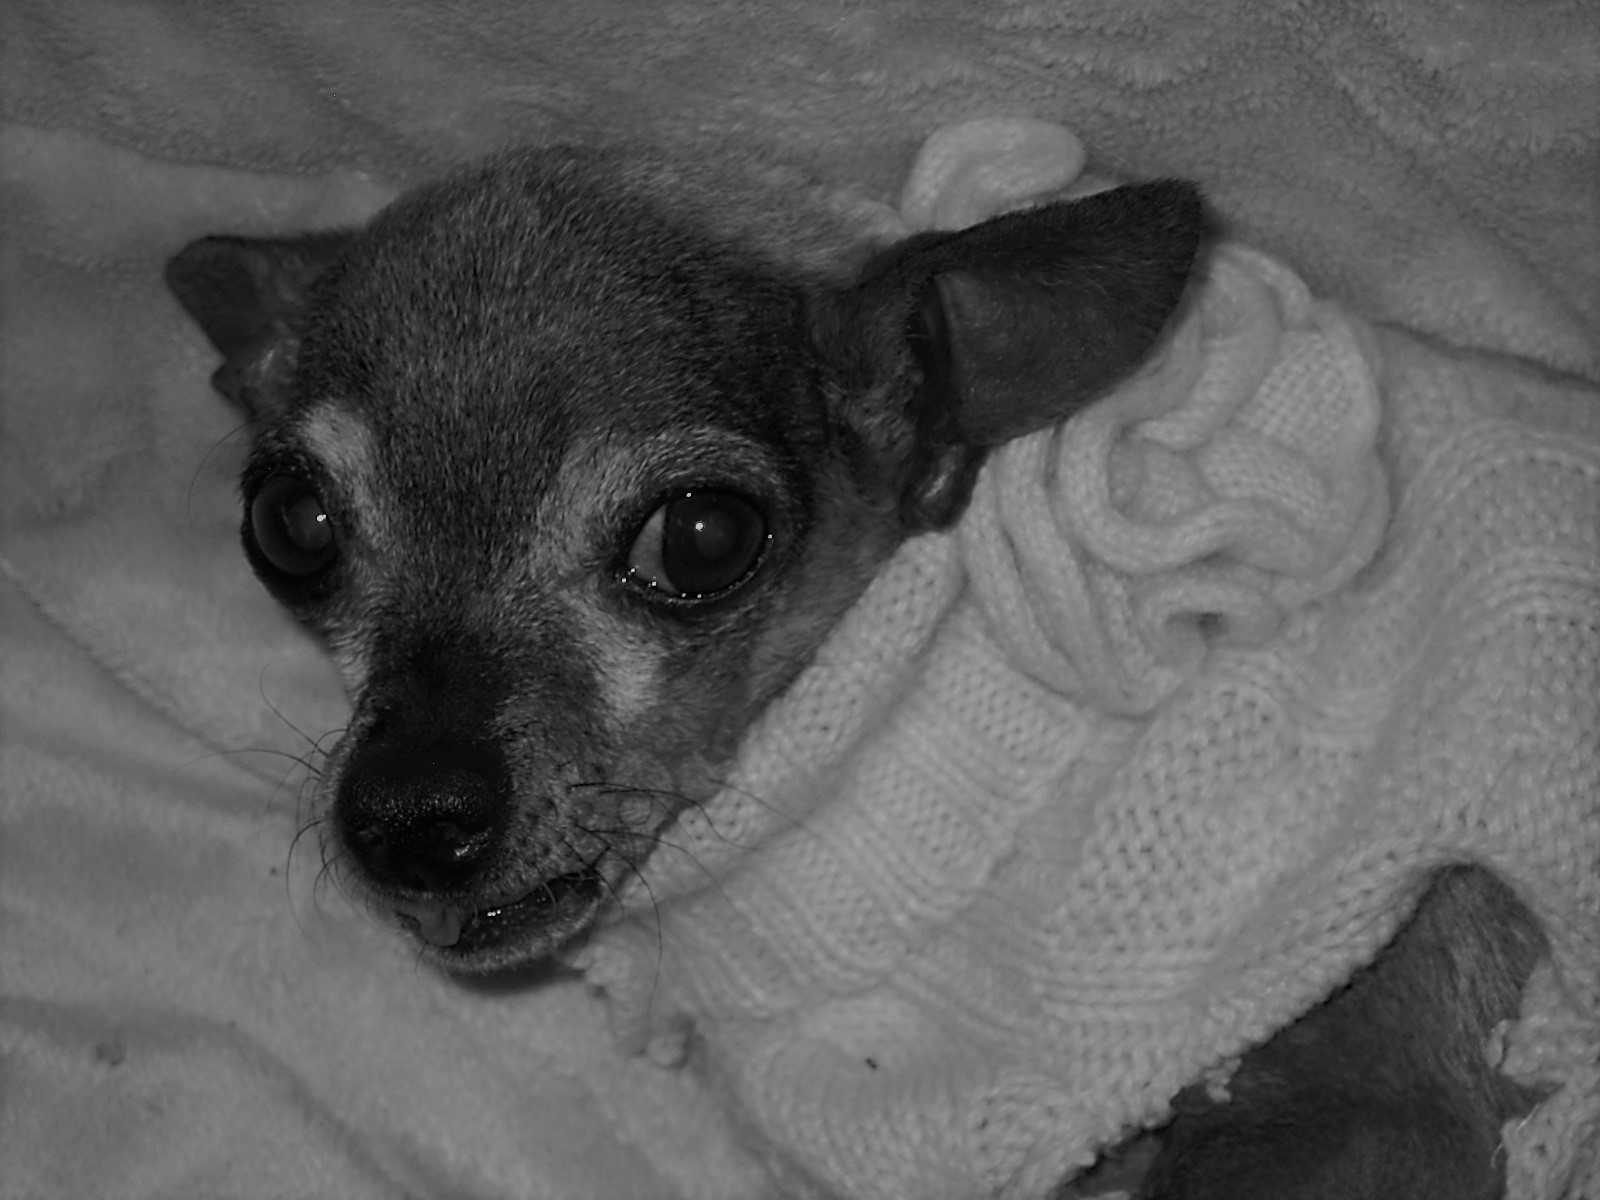 Mildred - 14-years-oldMildred was one of my heart dogs.She had a disorder that caused her legs not to work very well. So I carried her everywhere.She died of heart failure.